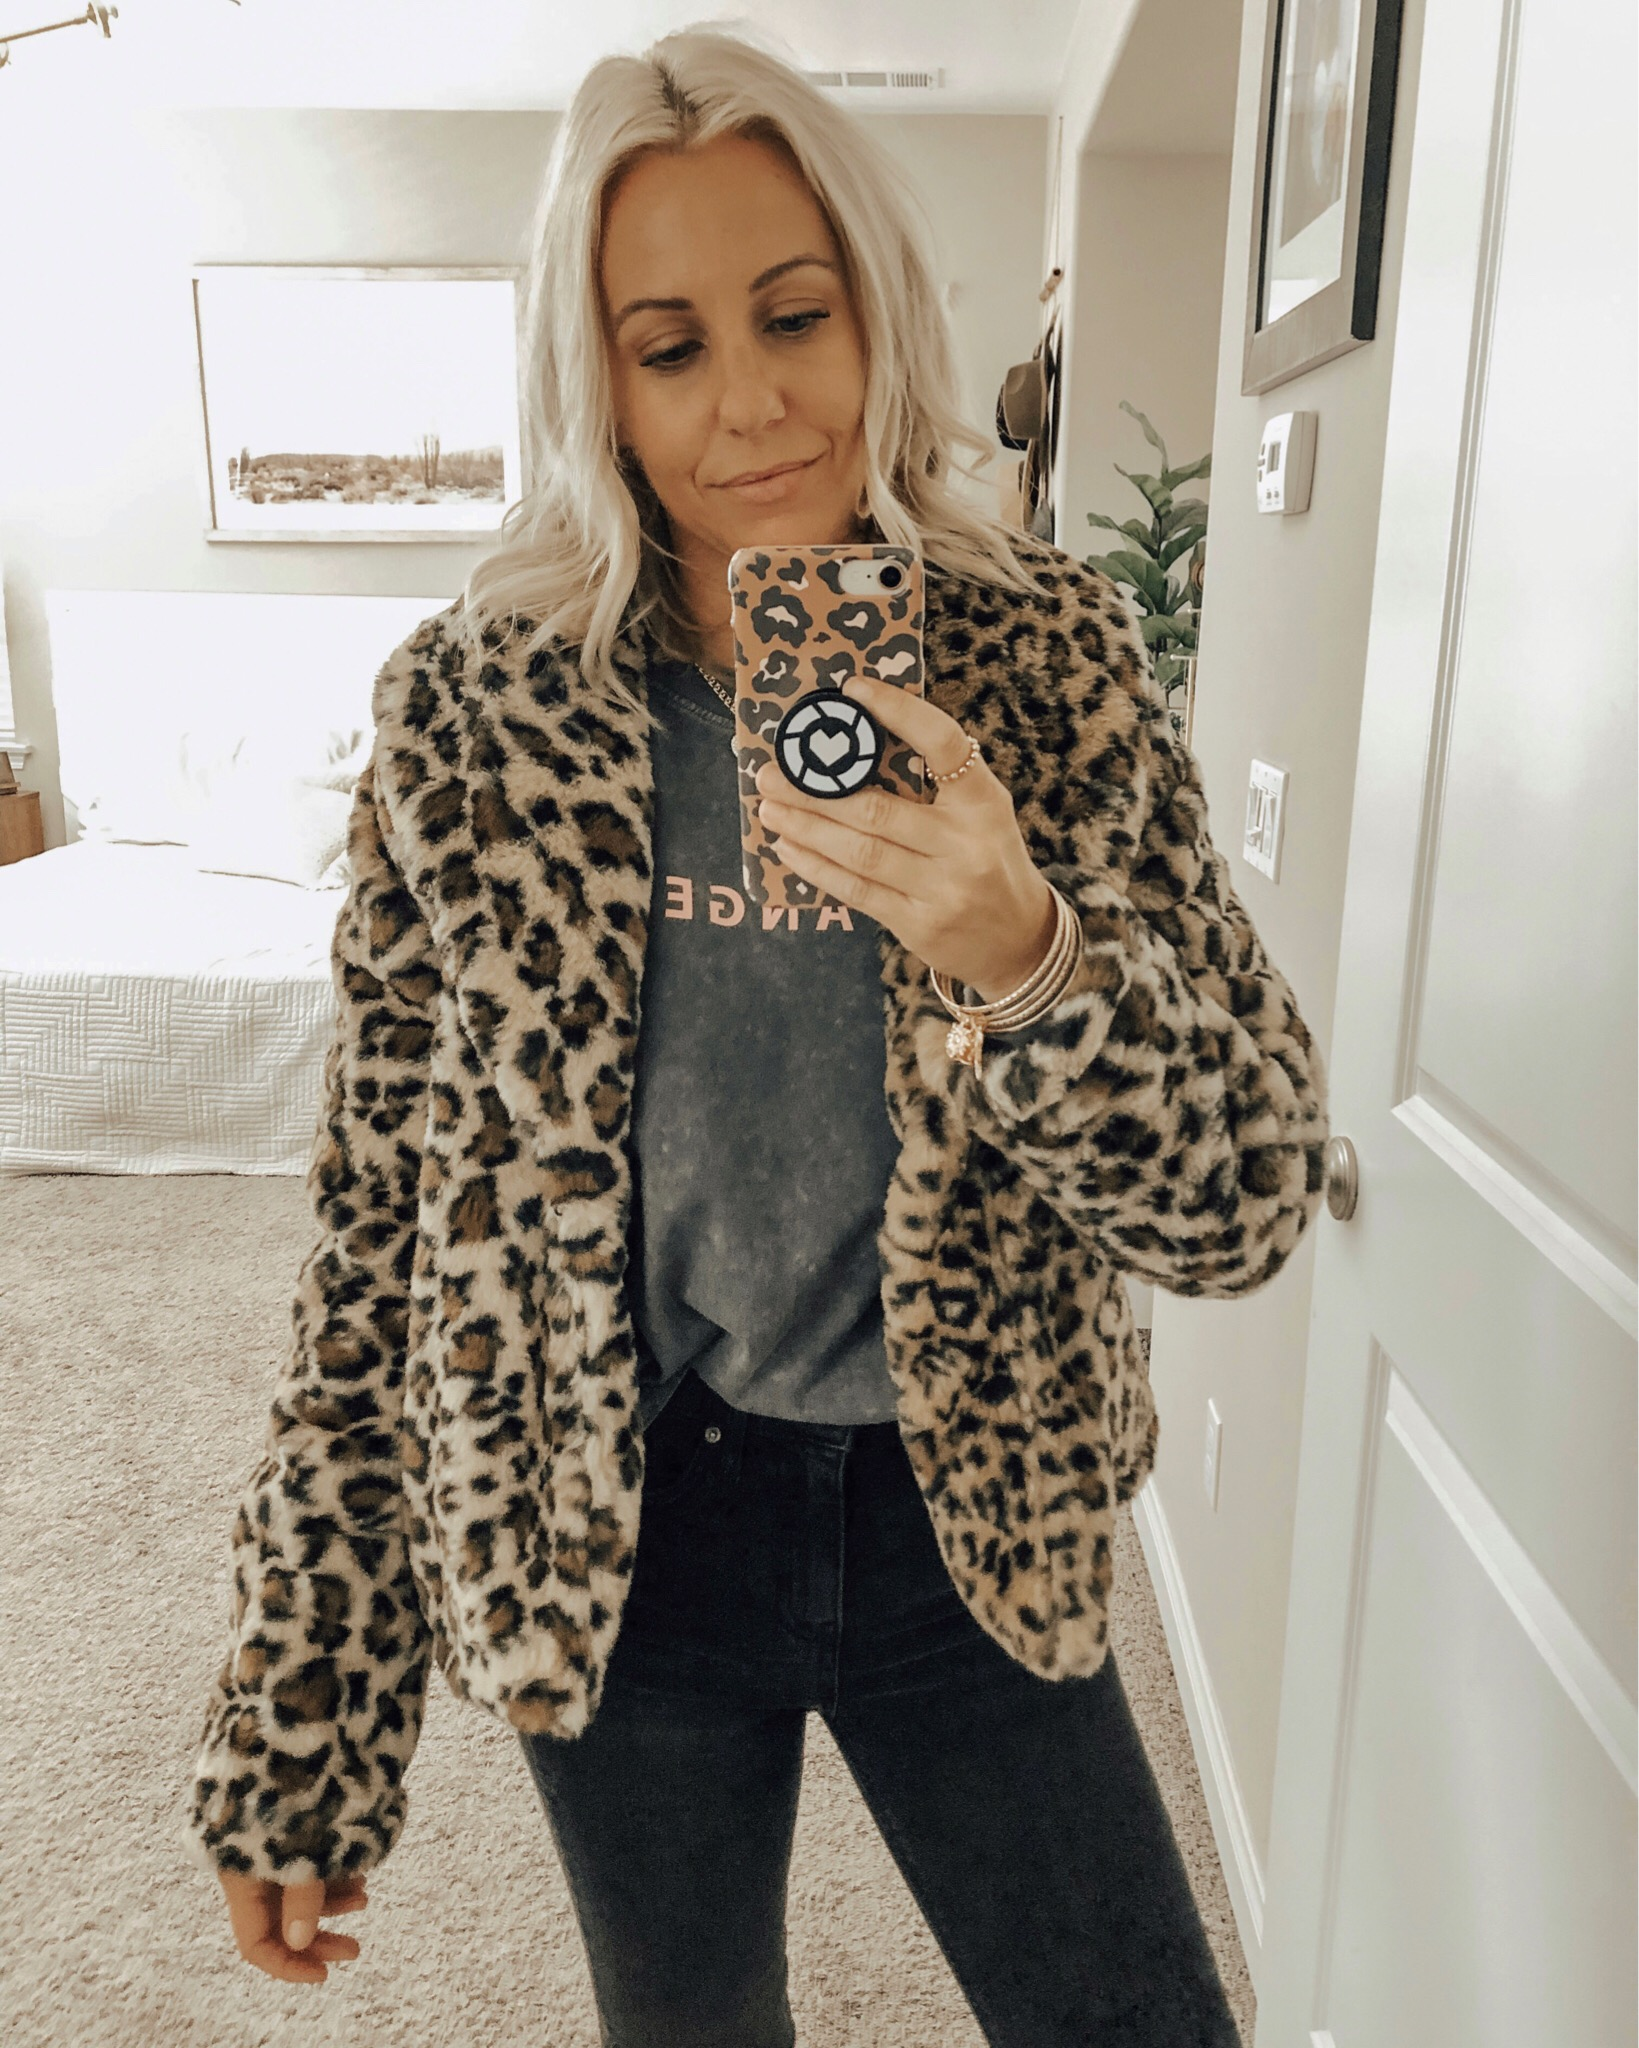 THE COZIEST FAUX FUR JACKETS + COATS- Jaclyn De Leon Style + Sharing the best of faux fur at great affordable price points. Throw it over a graphic tee + jeans or a plaid dress for a dressier look